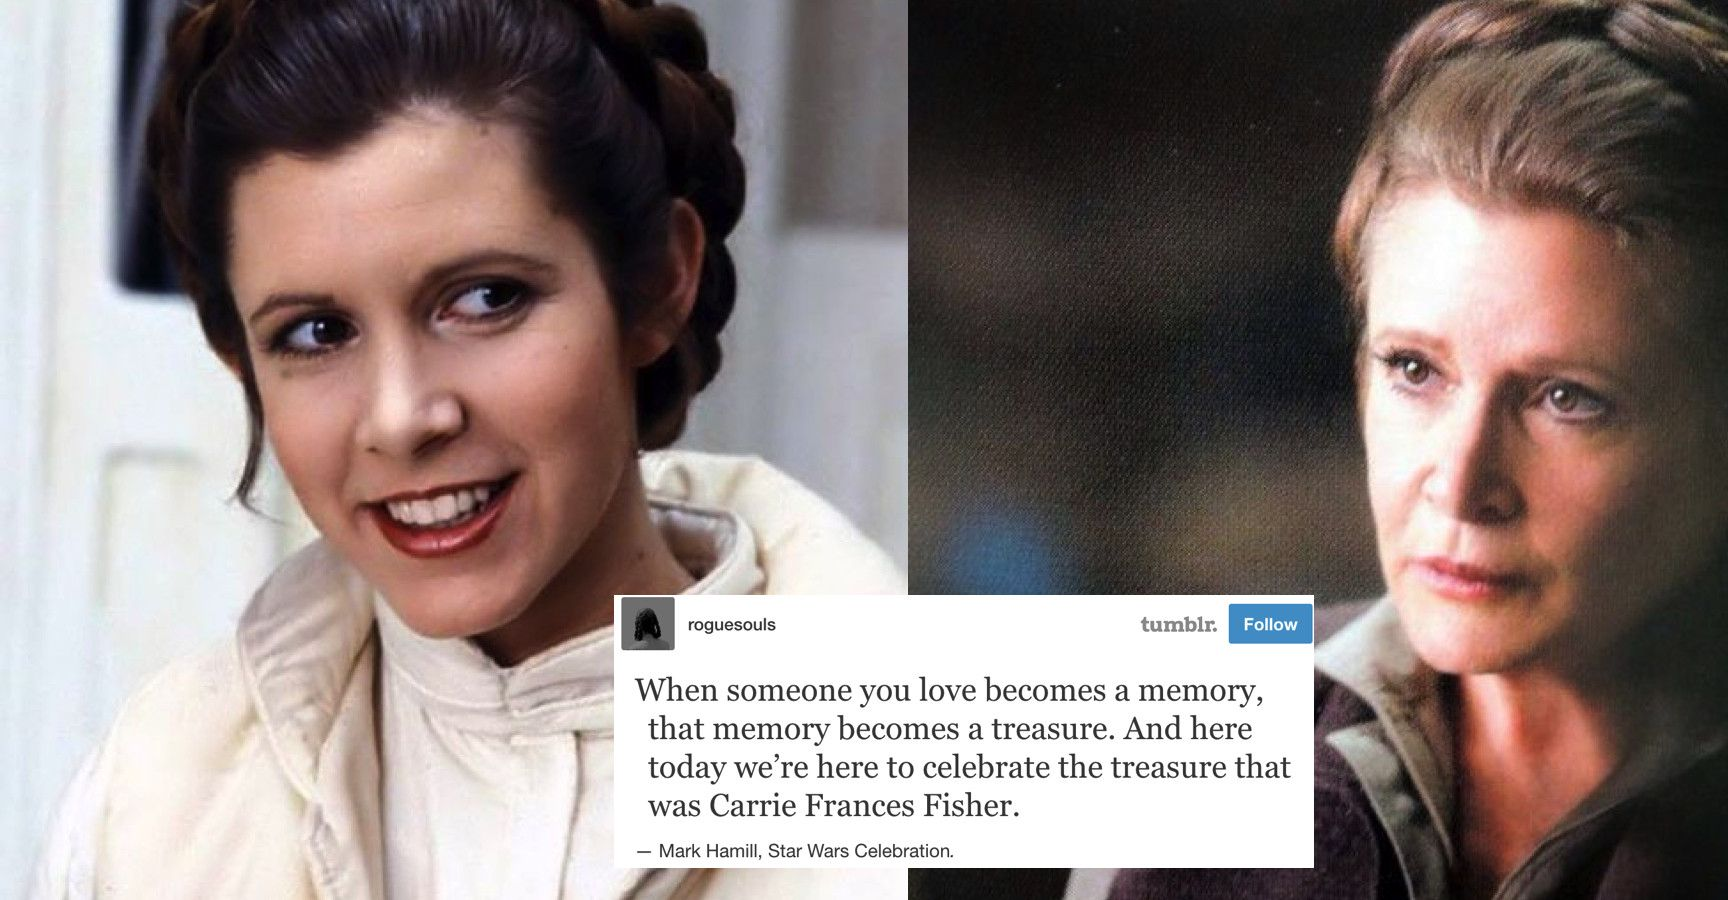 15 Tumblr Posts About Carrie Fisher That Will Give You All The Feels